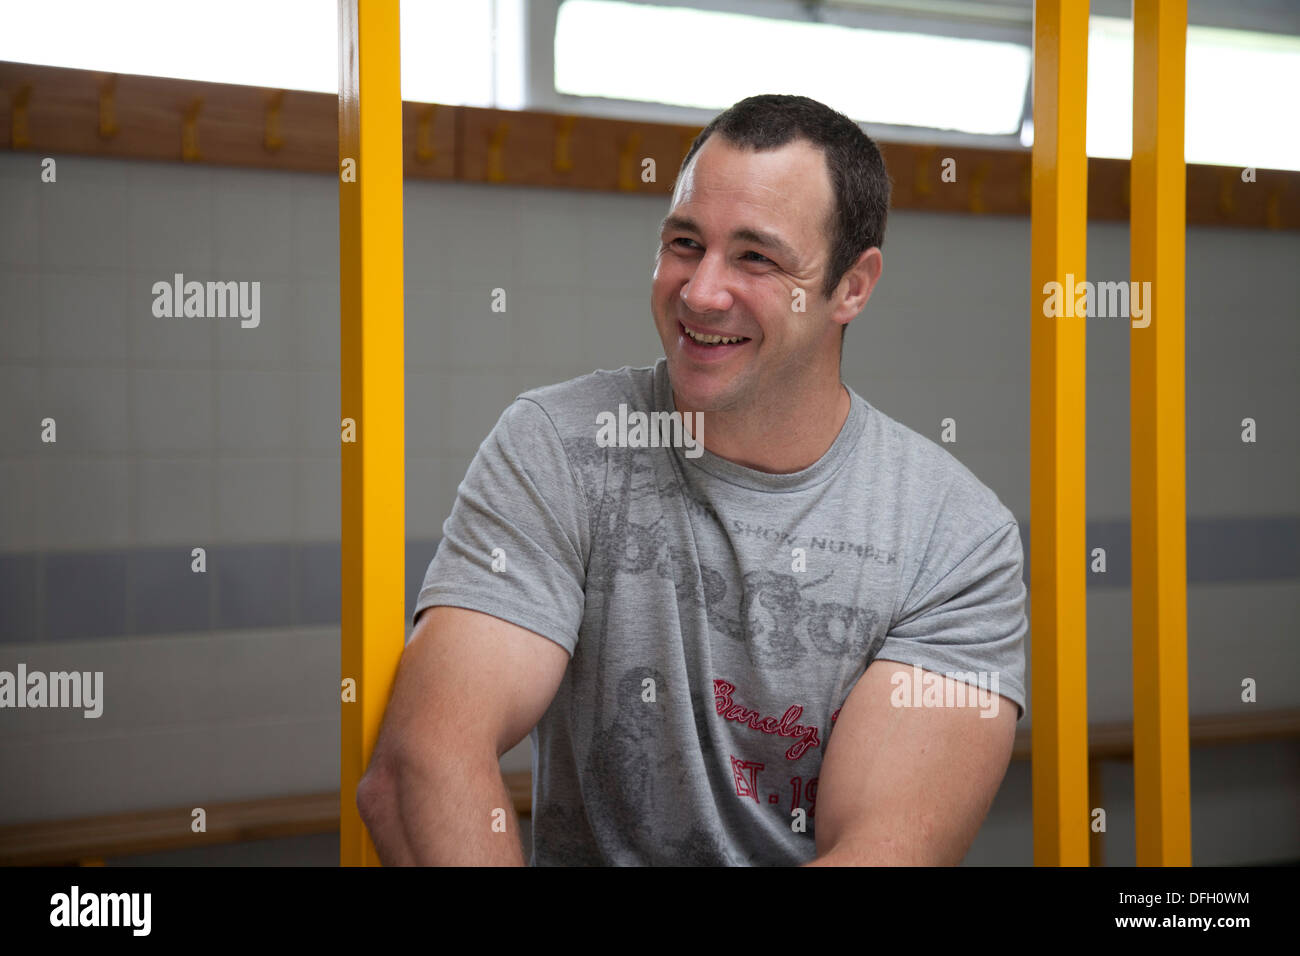 Adrian Morley, Salford Red Devils Rugby League player - Stock Image